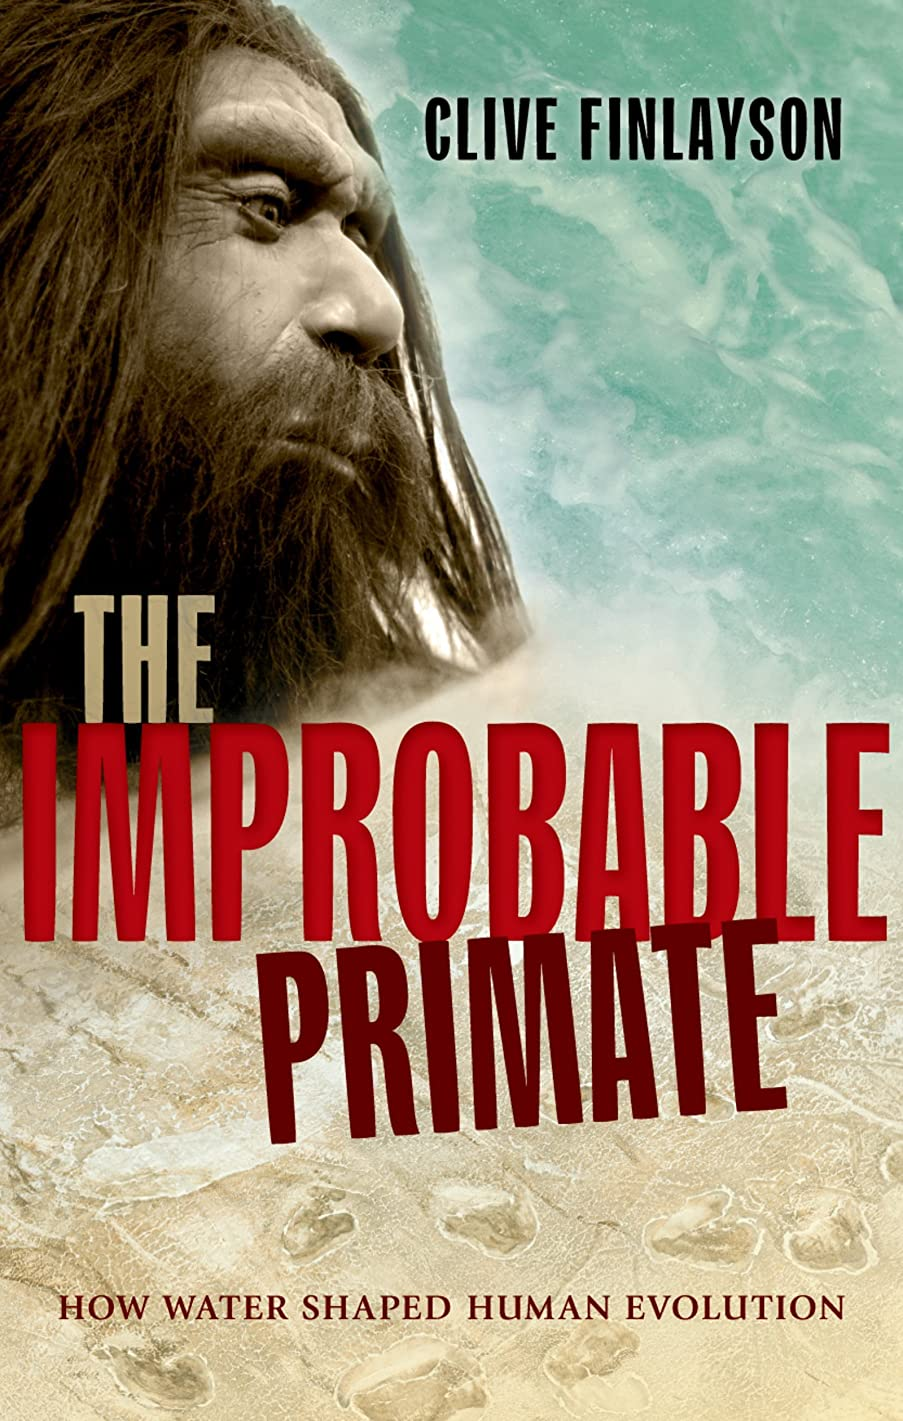 願う消毒剤タワーThe Improbable Primate: How Water Shaped Human Evolution (English Edition)